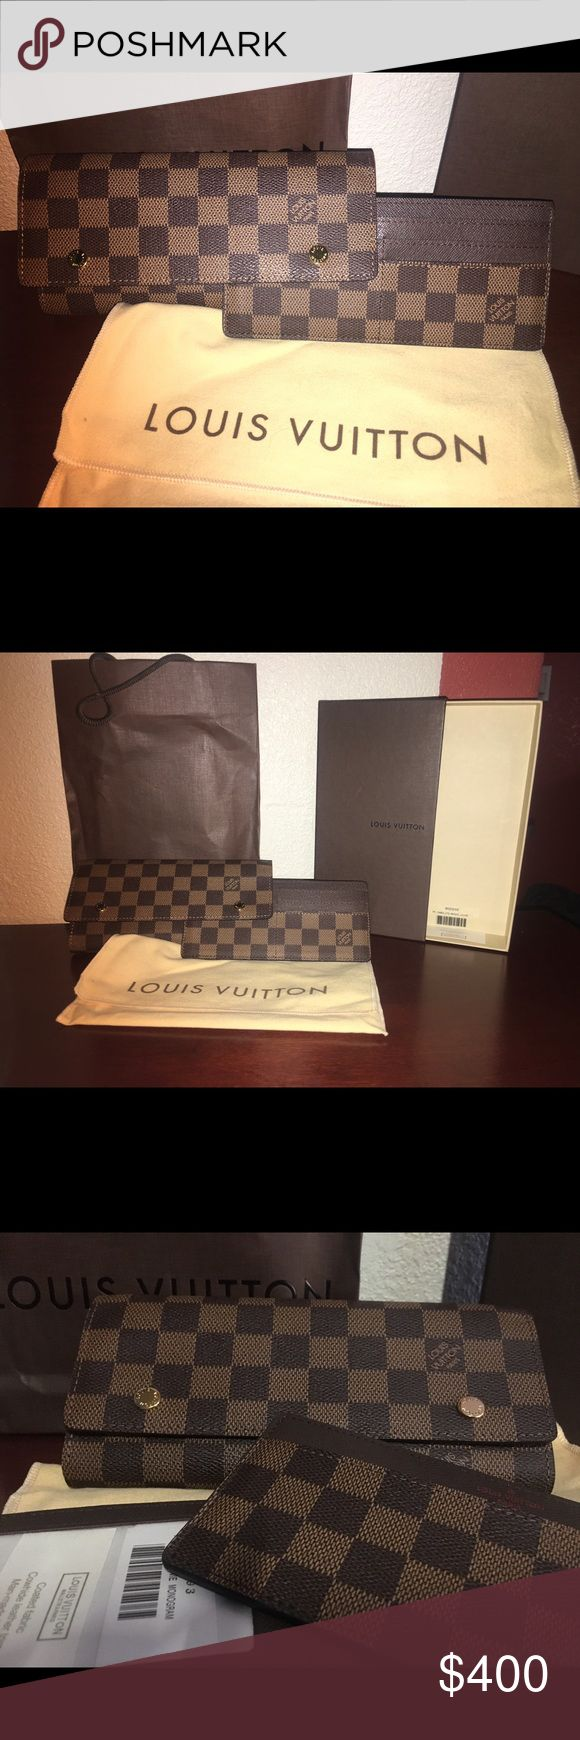 ⭐️ Louis Vuitton⭐️ woman's checkered wallet 100% Authentic Louis Vuitton woman's wallet! Never been used still has box and bags. If you have any questions please ask. Louis Vuitton Bags Wallets